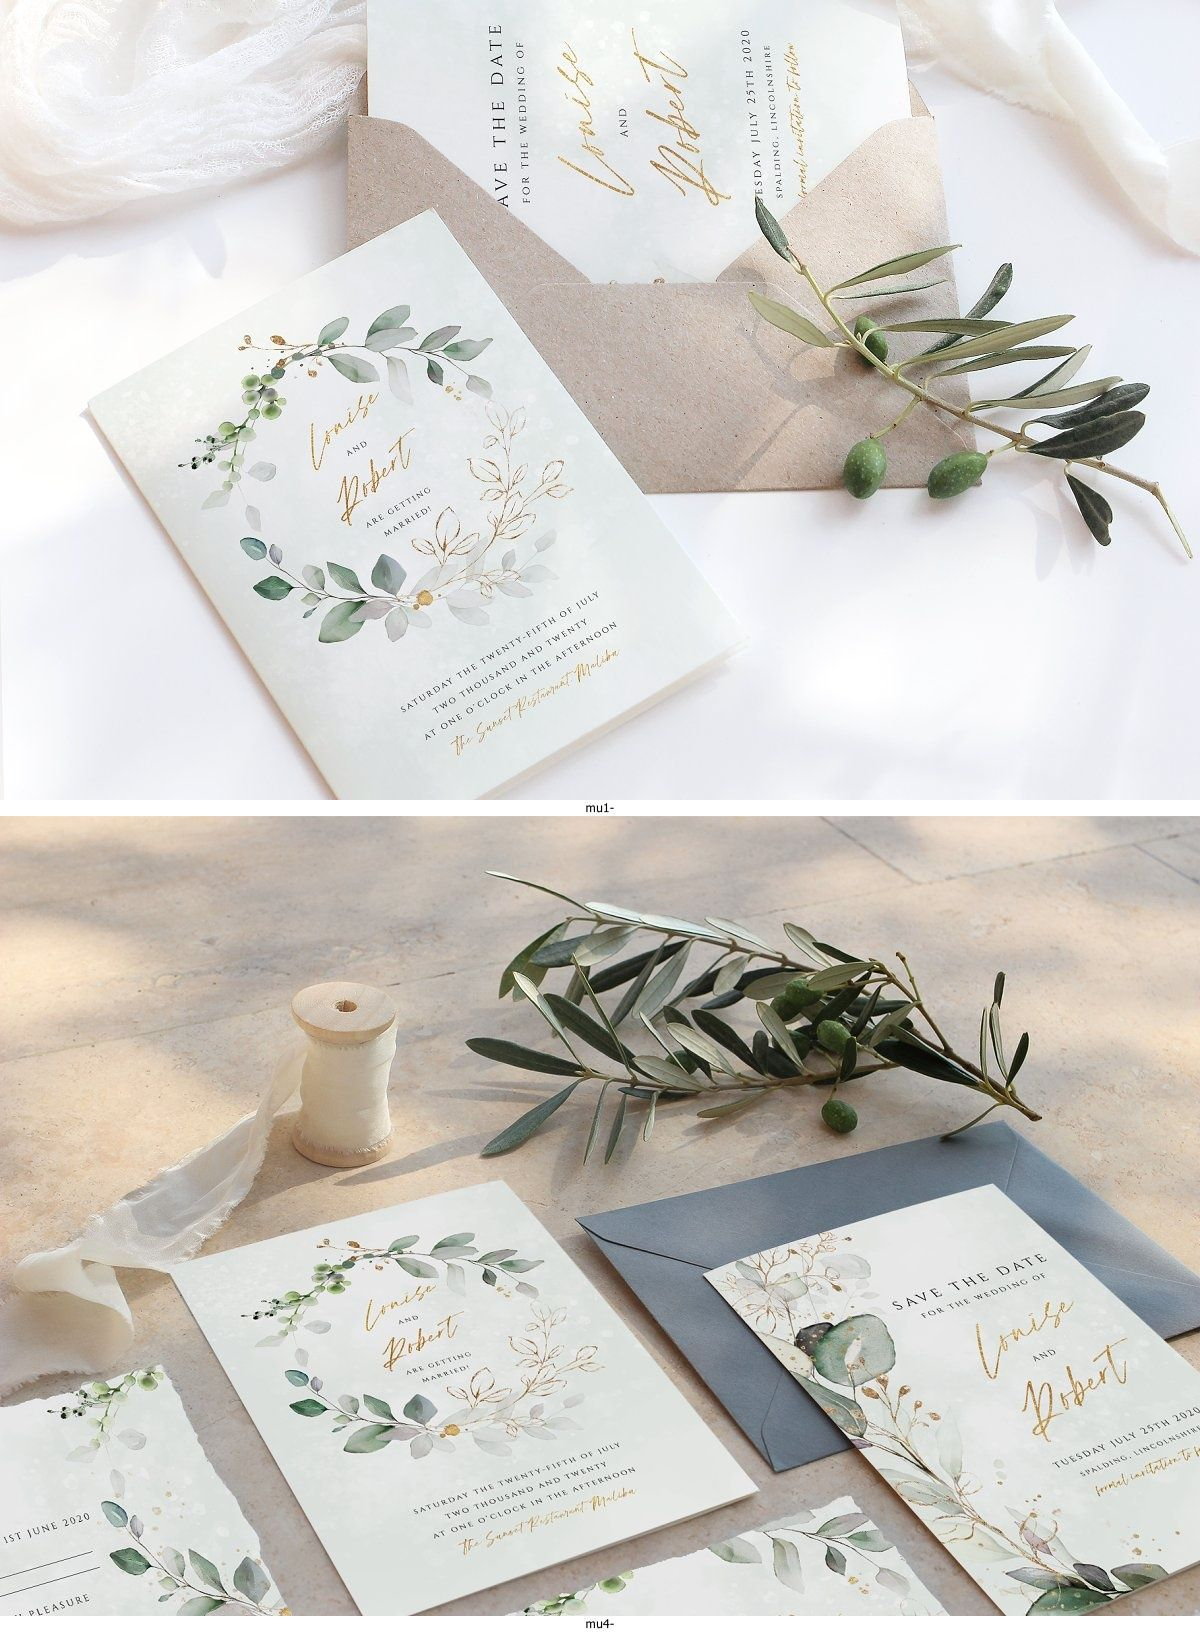 This 6 piece wedding stationery template features beautiful watercolor eucalyptus leaves in green and gold - perfect for an informal yet elegant wedding! | wedding stationery floral fonts #sponsored #wedding #clipart #graphics #design #weddingday #weddinginspiration #weddingplanning #floral #watercolor #rustic #elegant #bride #groom #color #design #romantic #greenery